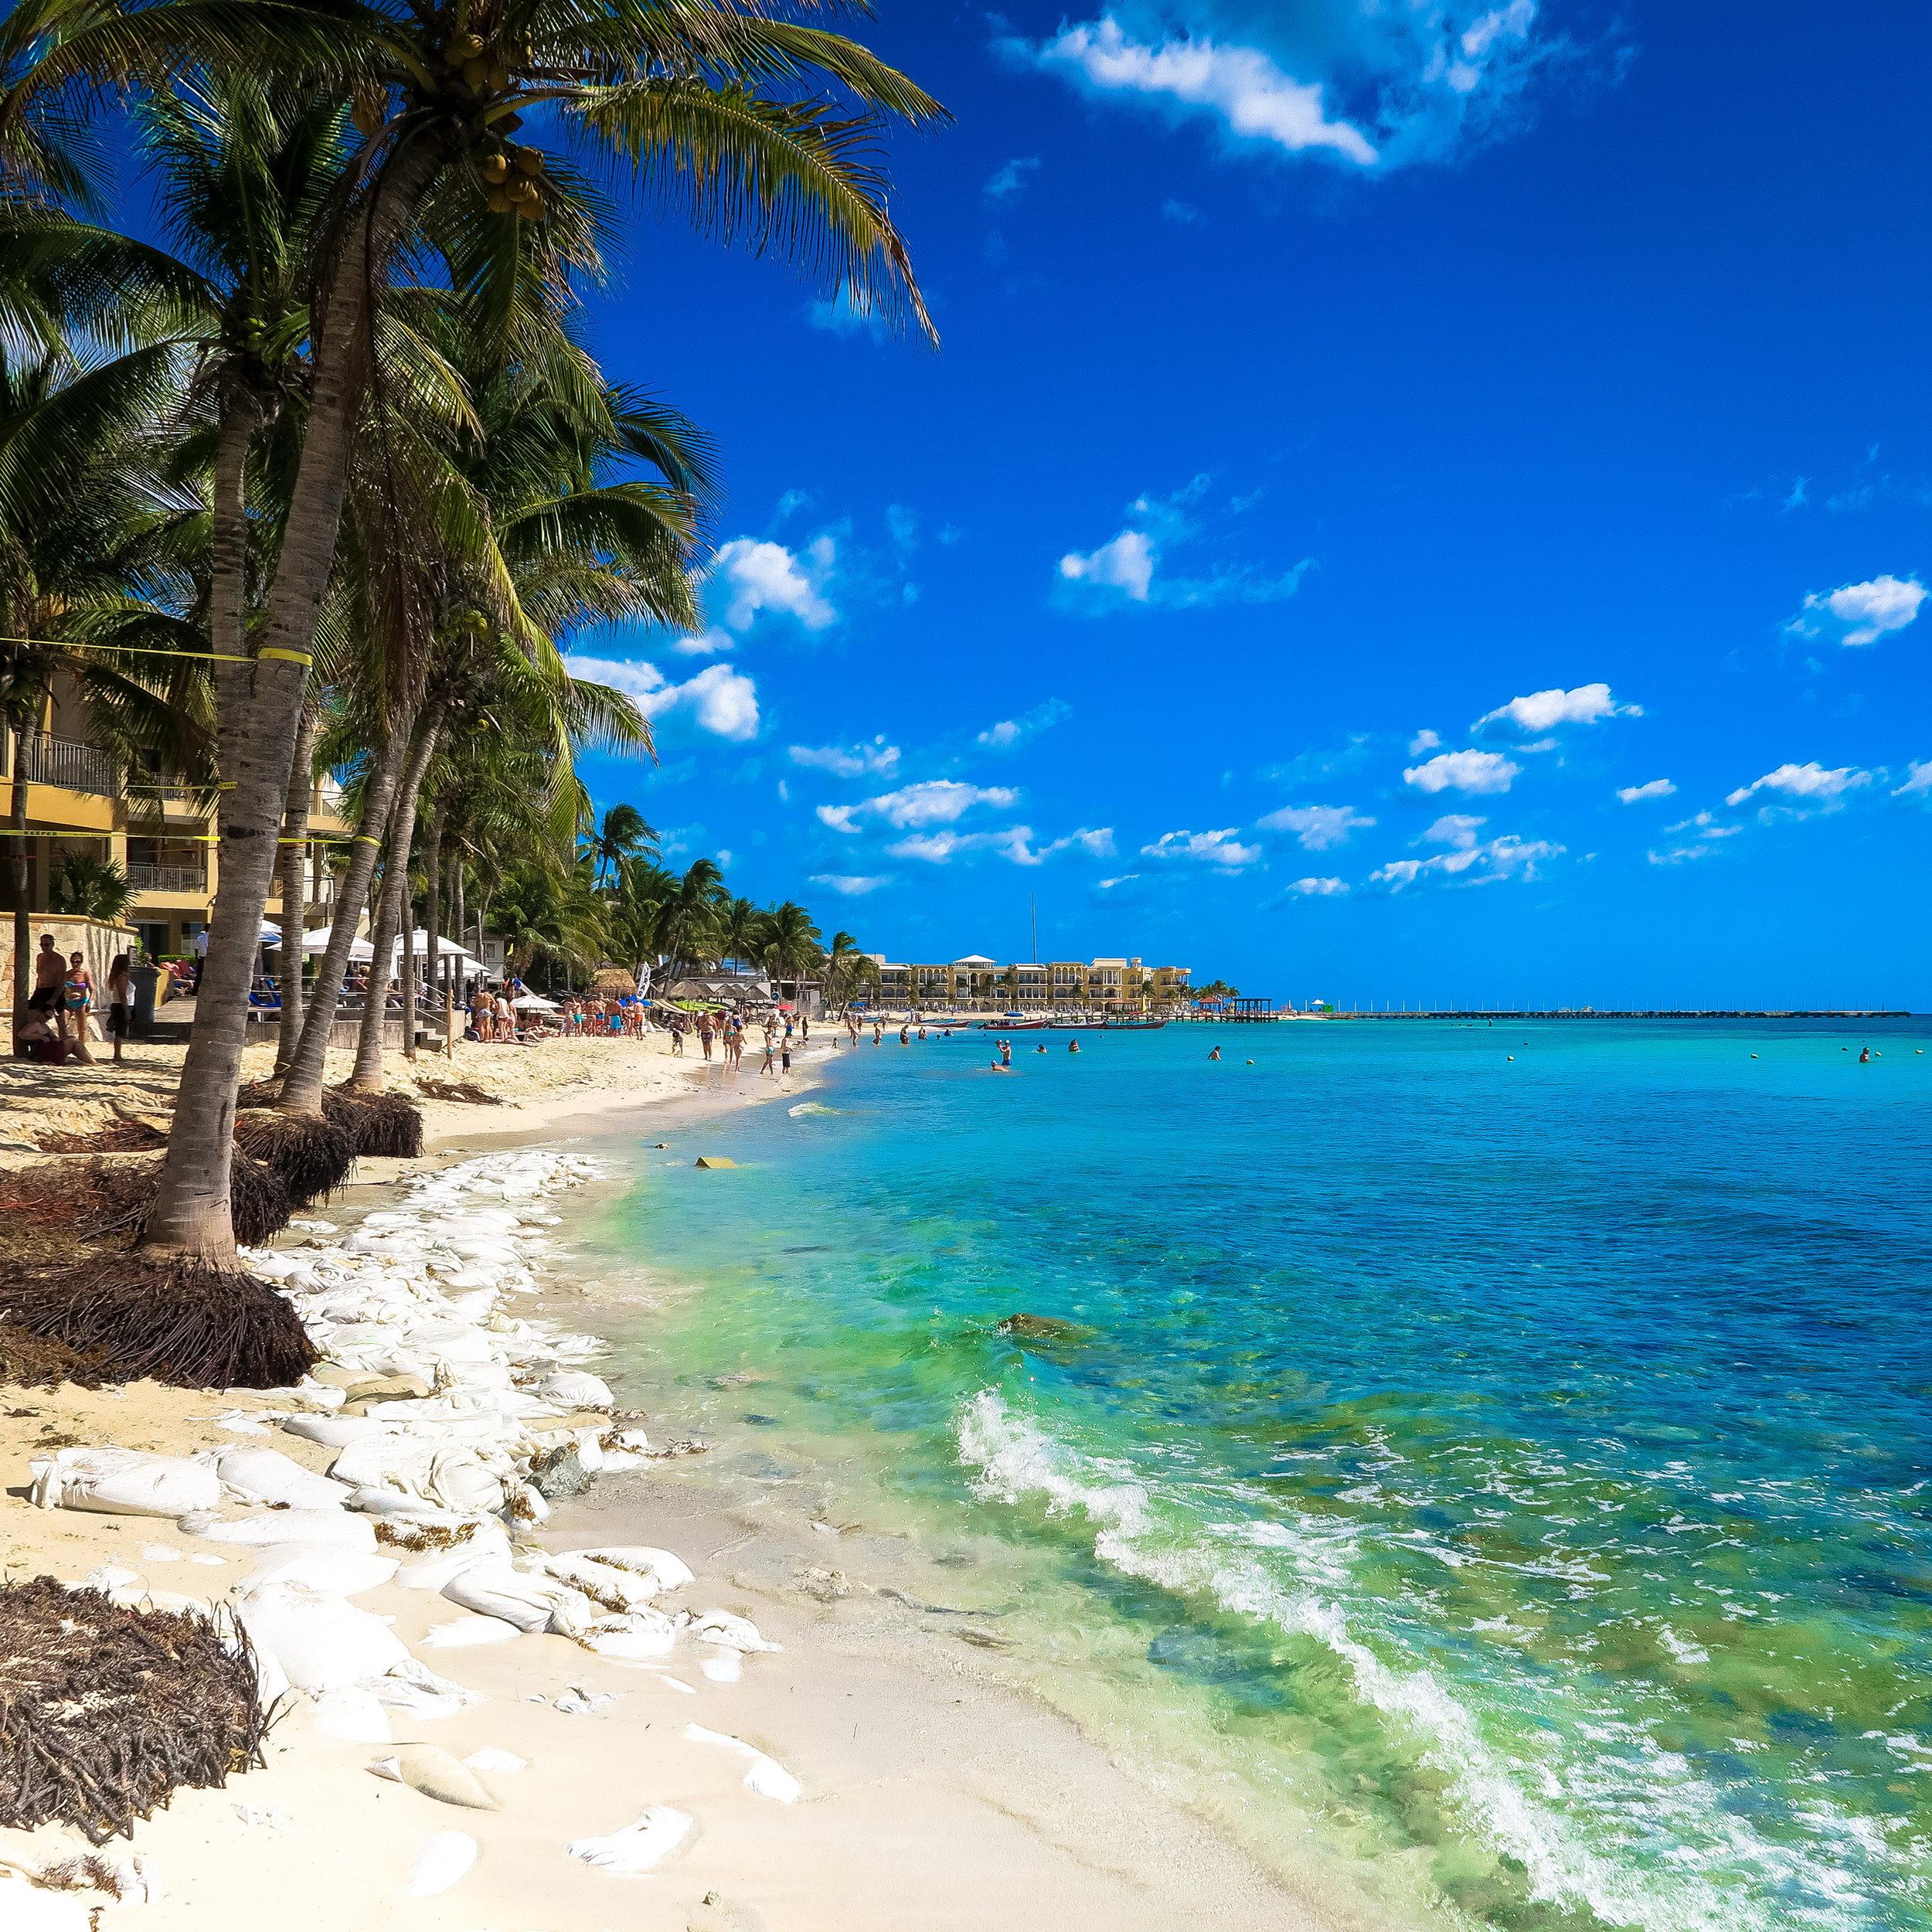 Staying in Playa Del Carmen and looking to get away for the day?